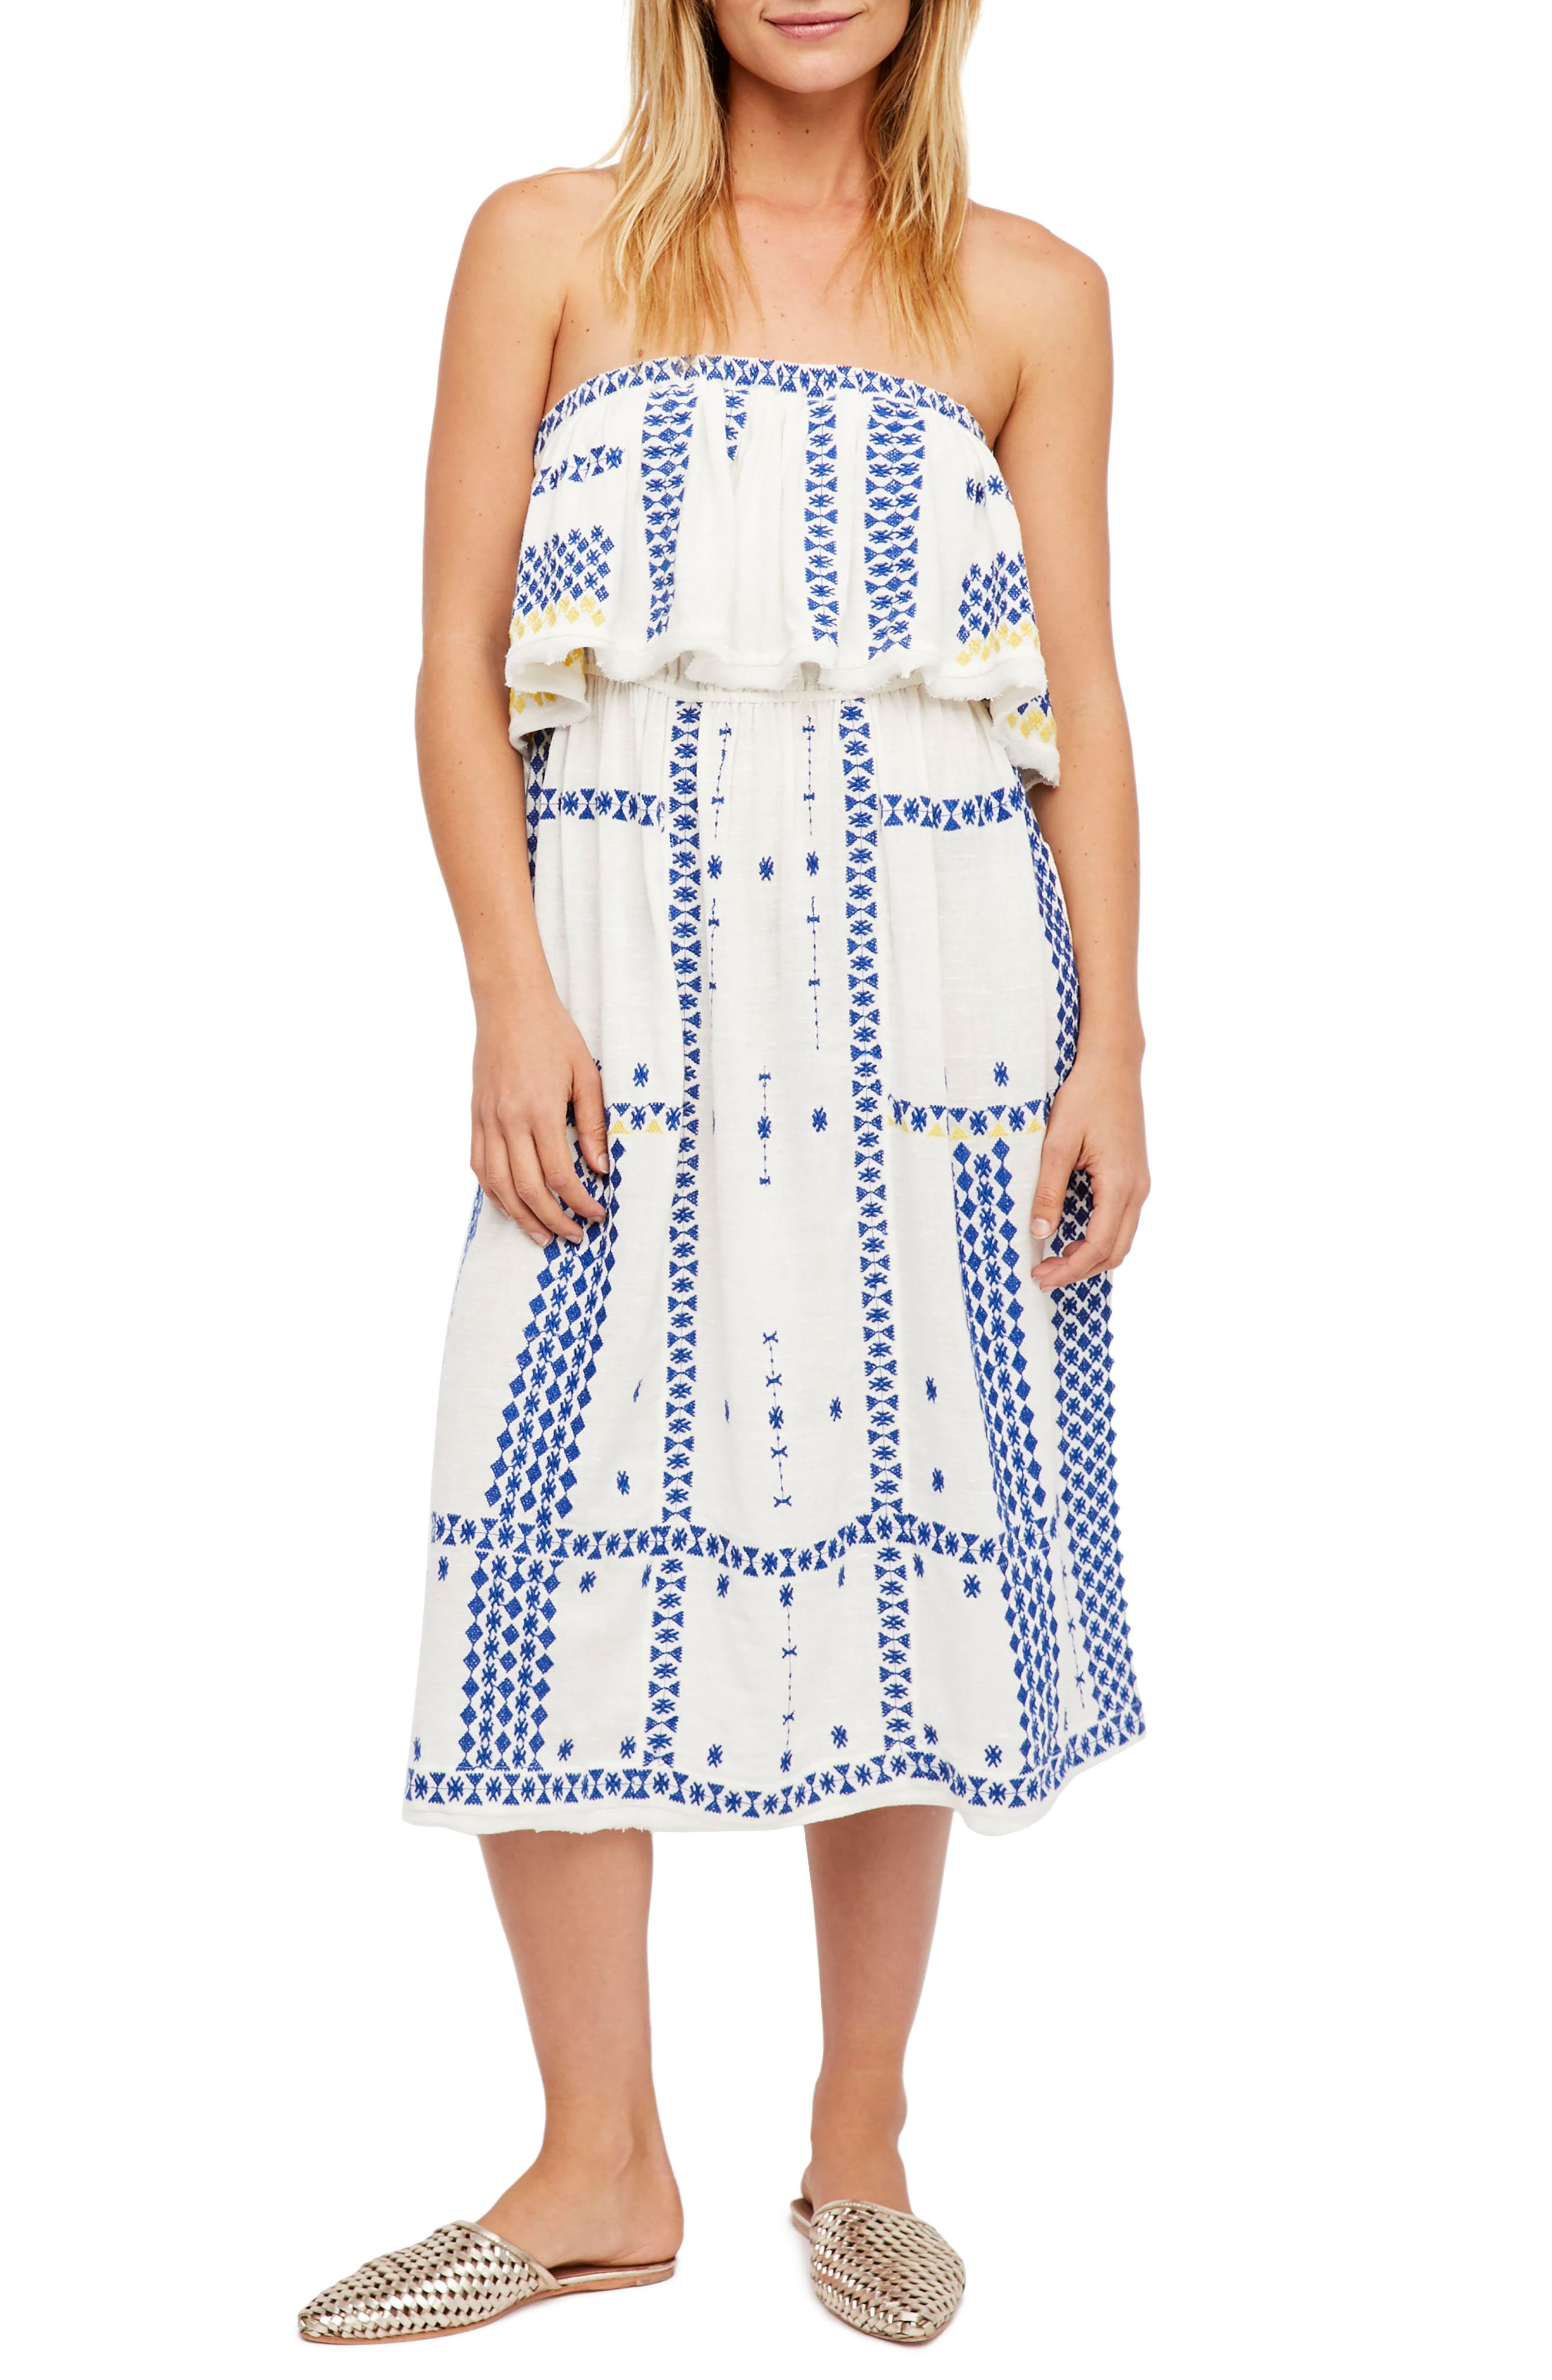 Wild Romance Embroidered Dress,                             Main thumbnail 1, color,                             903